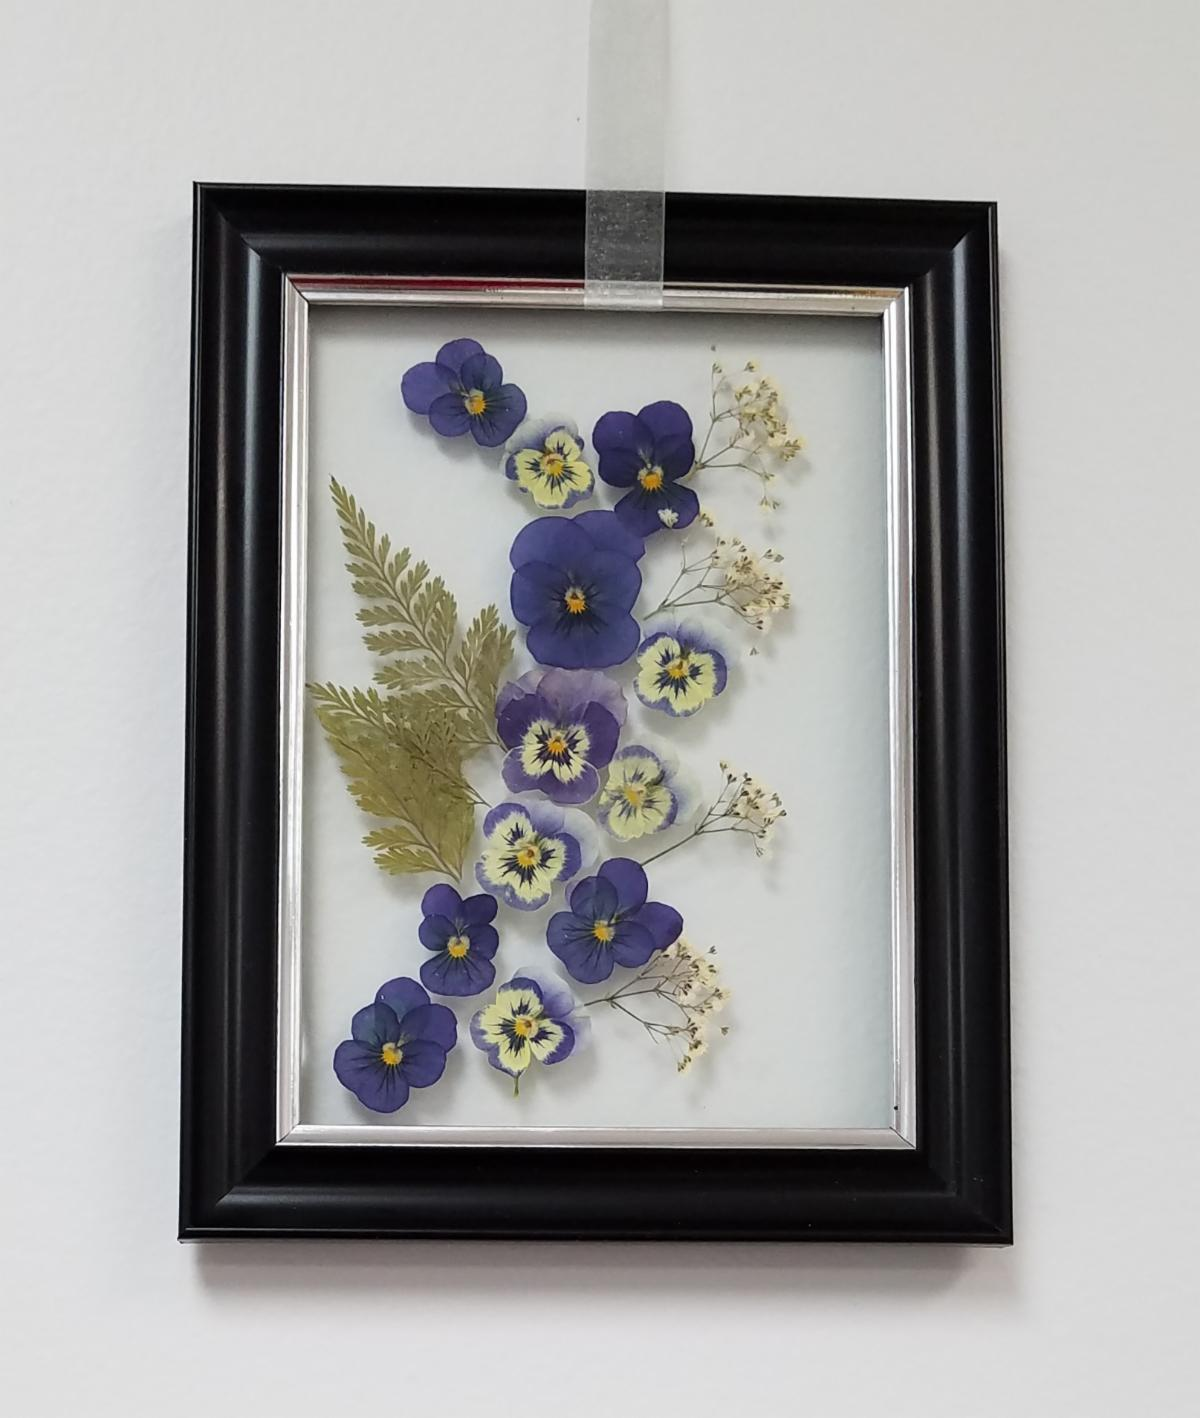 Pressed Flowers Glass Art project picture by JoAnne Jolley